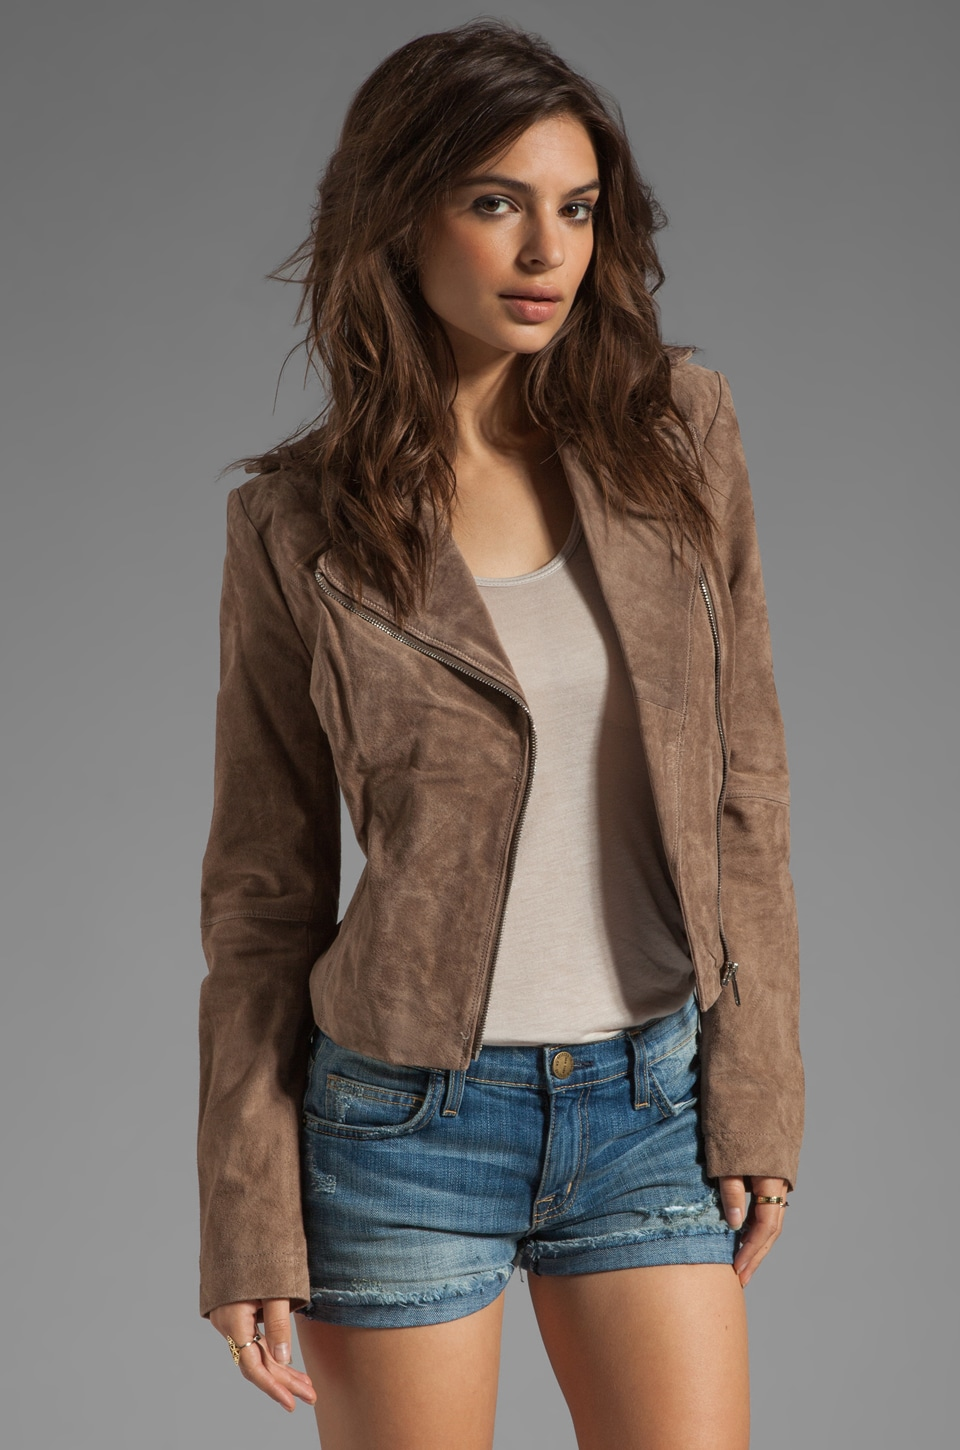 Soia & Kyo Lizzie Suede Leather Jacket in Taupe